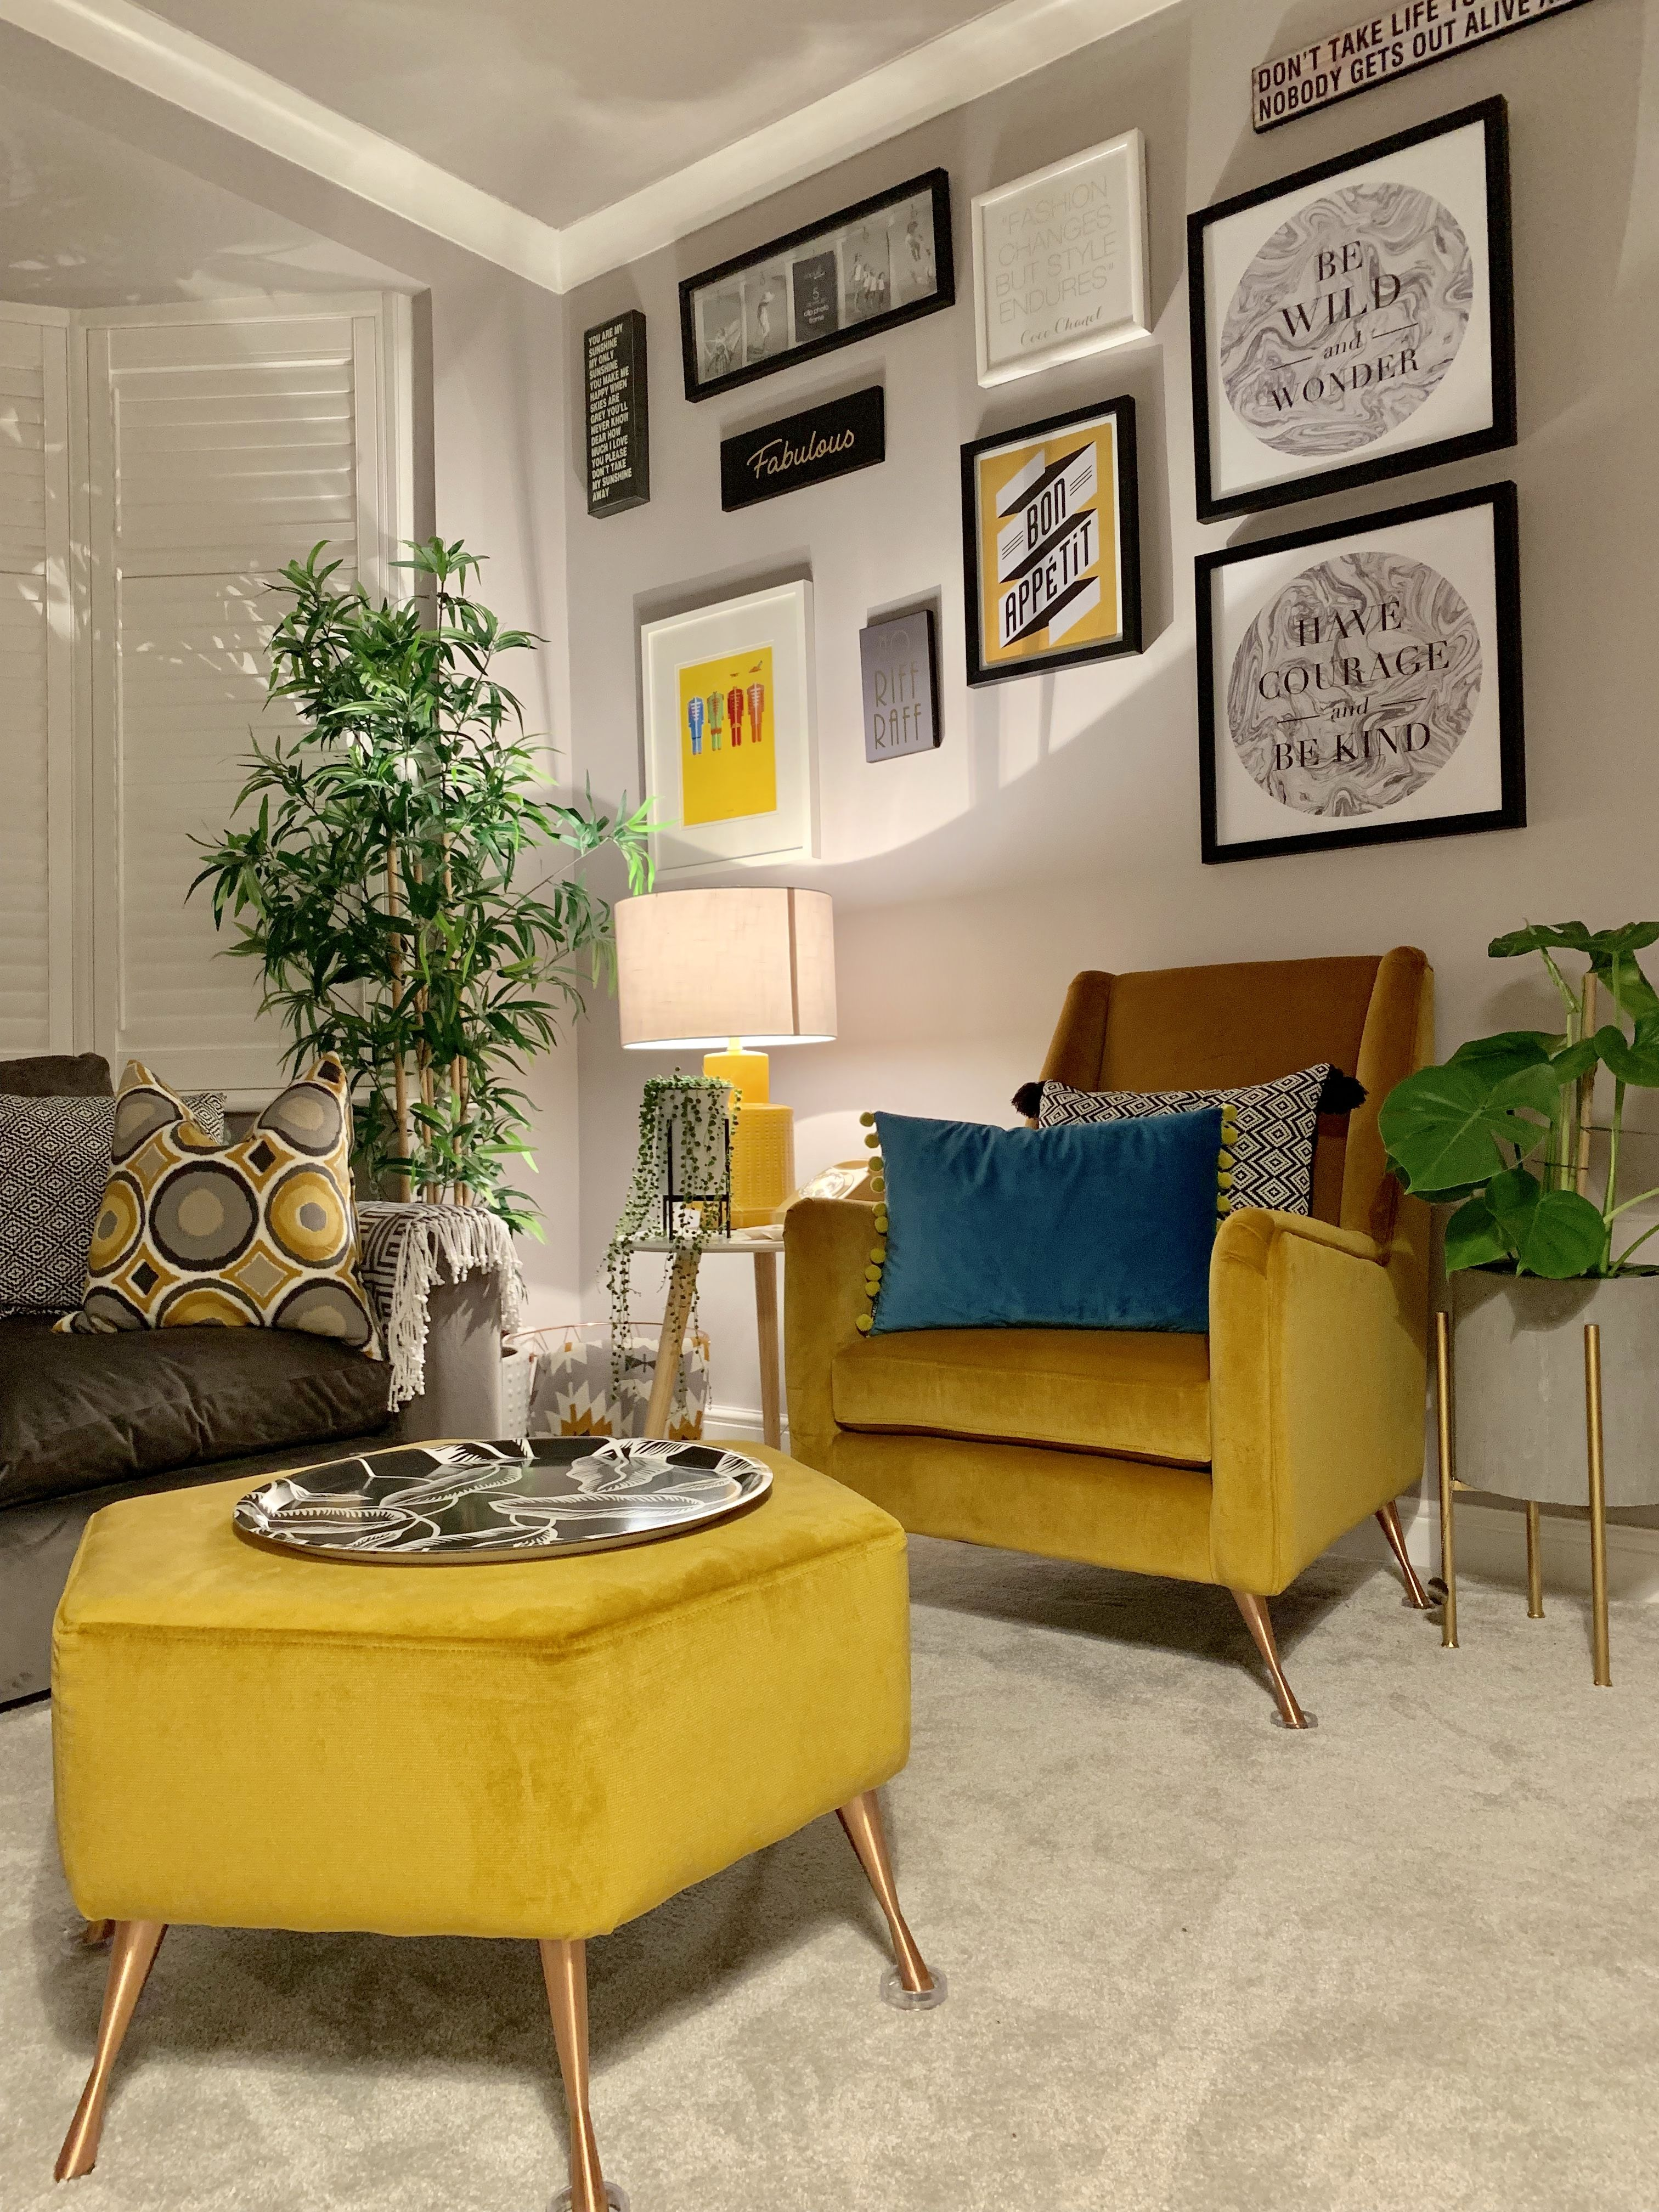 Mustard Living Room Decor: Pin By Billie Thomas On Decor In 2019